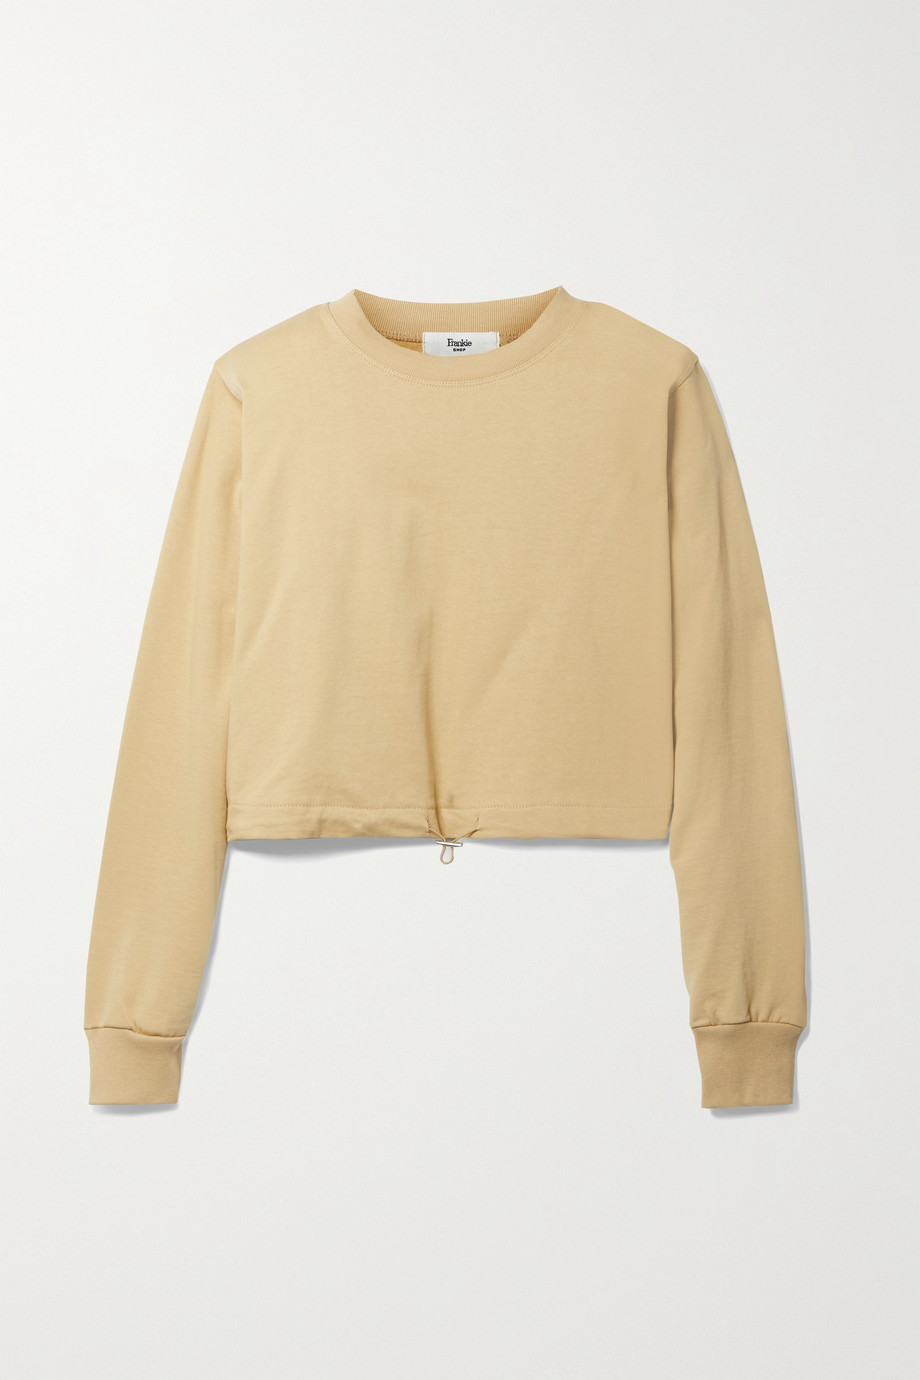 Frankie Shop Vanessa cropped French cotton-terry sweatshirt